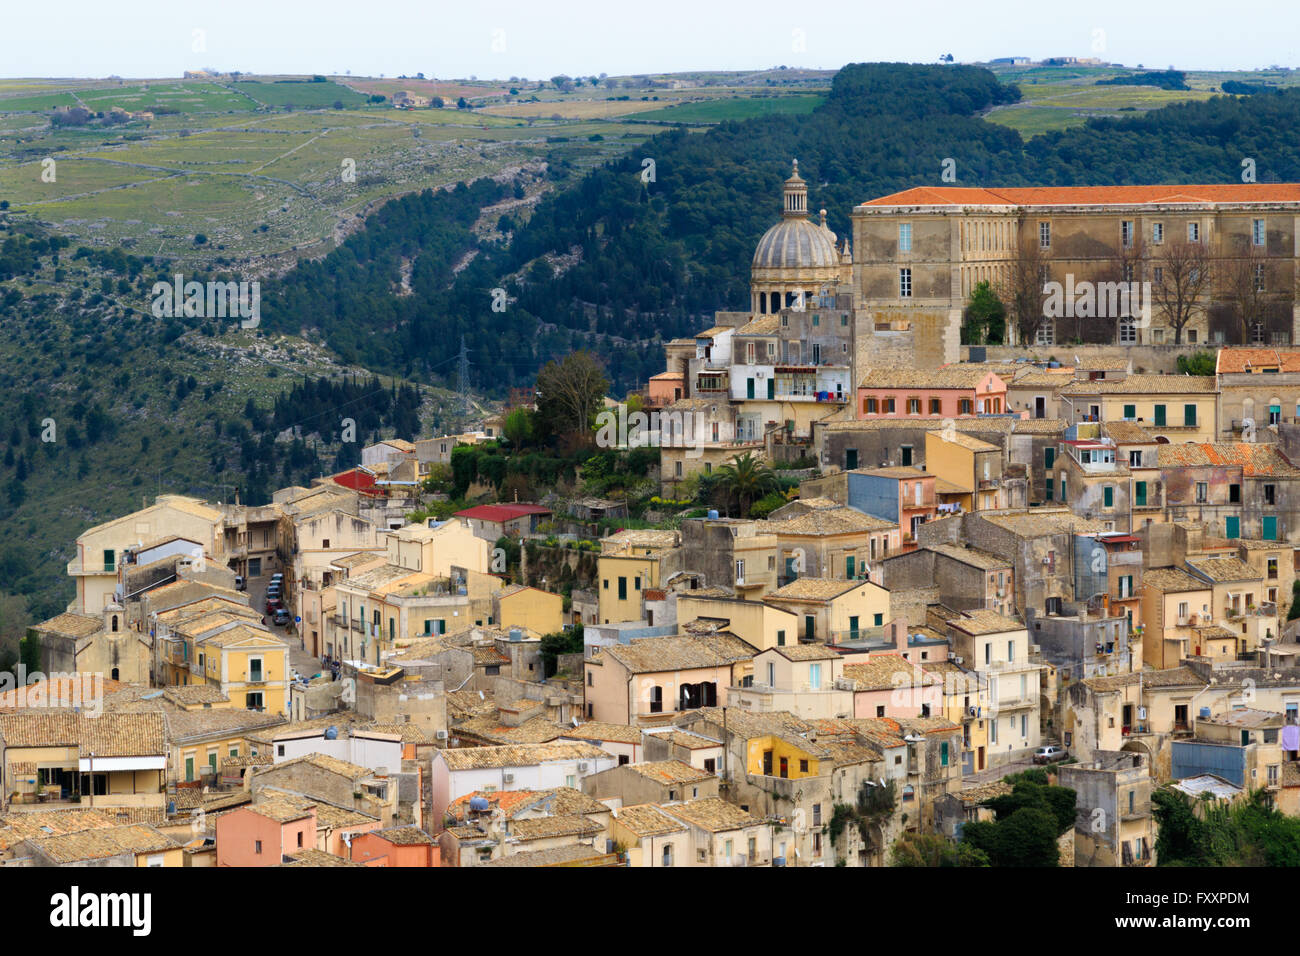 Old Town in Ragusa, Sicily, Italy - Stock Image